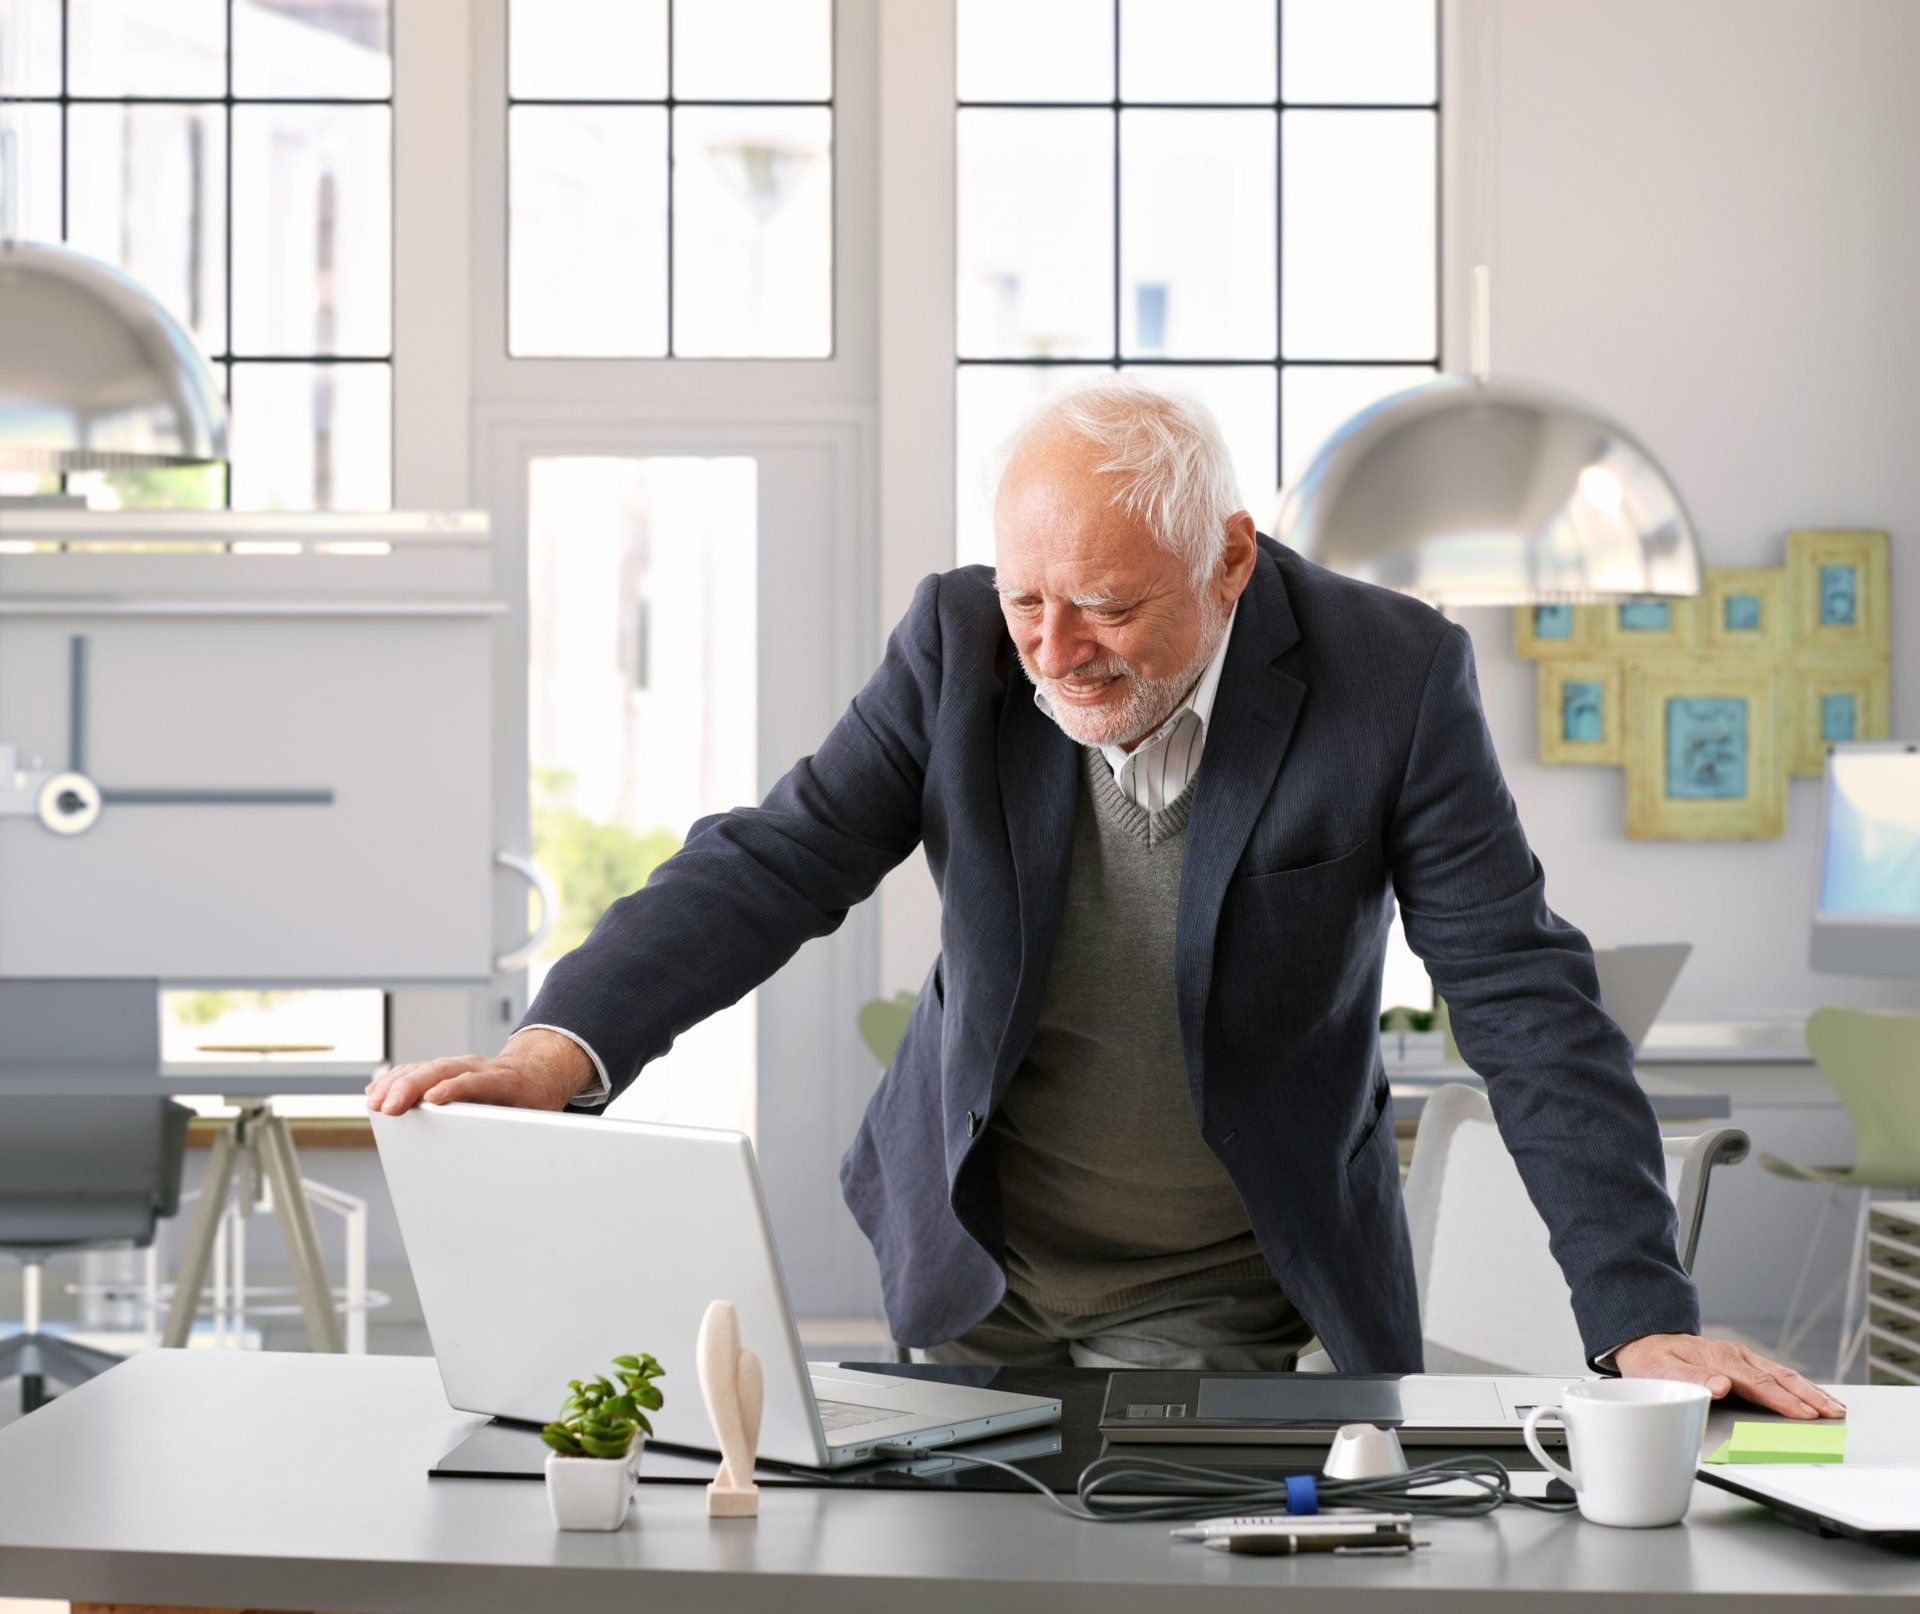 A senior worker checking his laptop